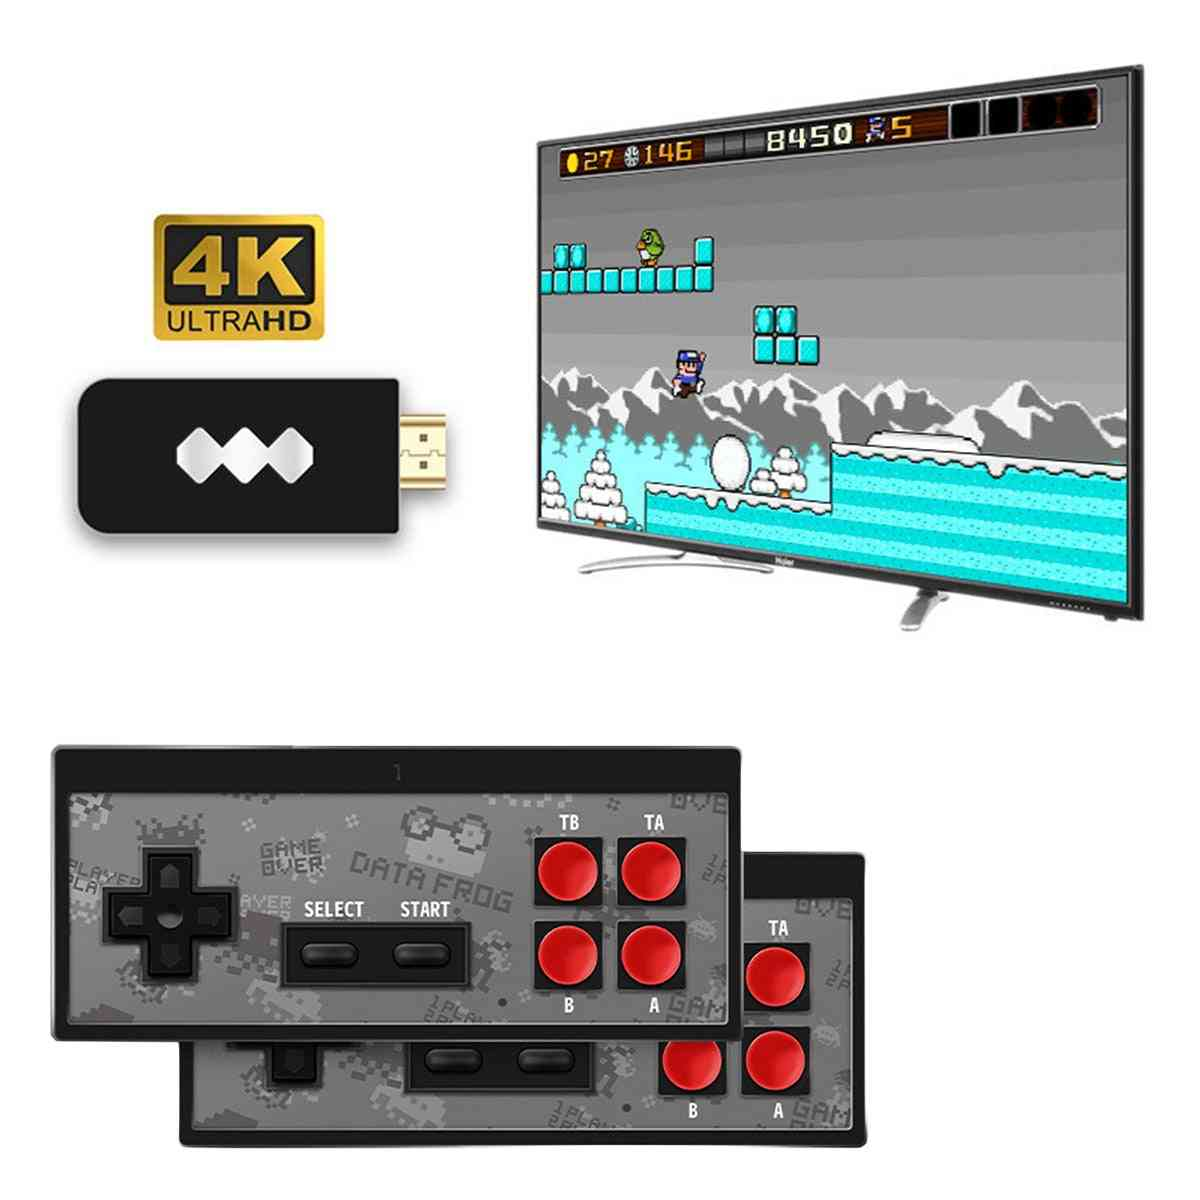 Data Usb Wireless Handheld Tv Video Game Console Support